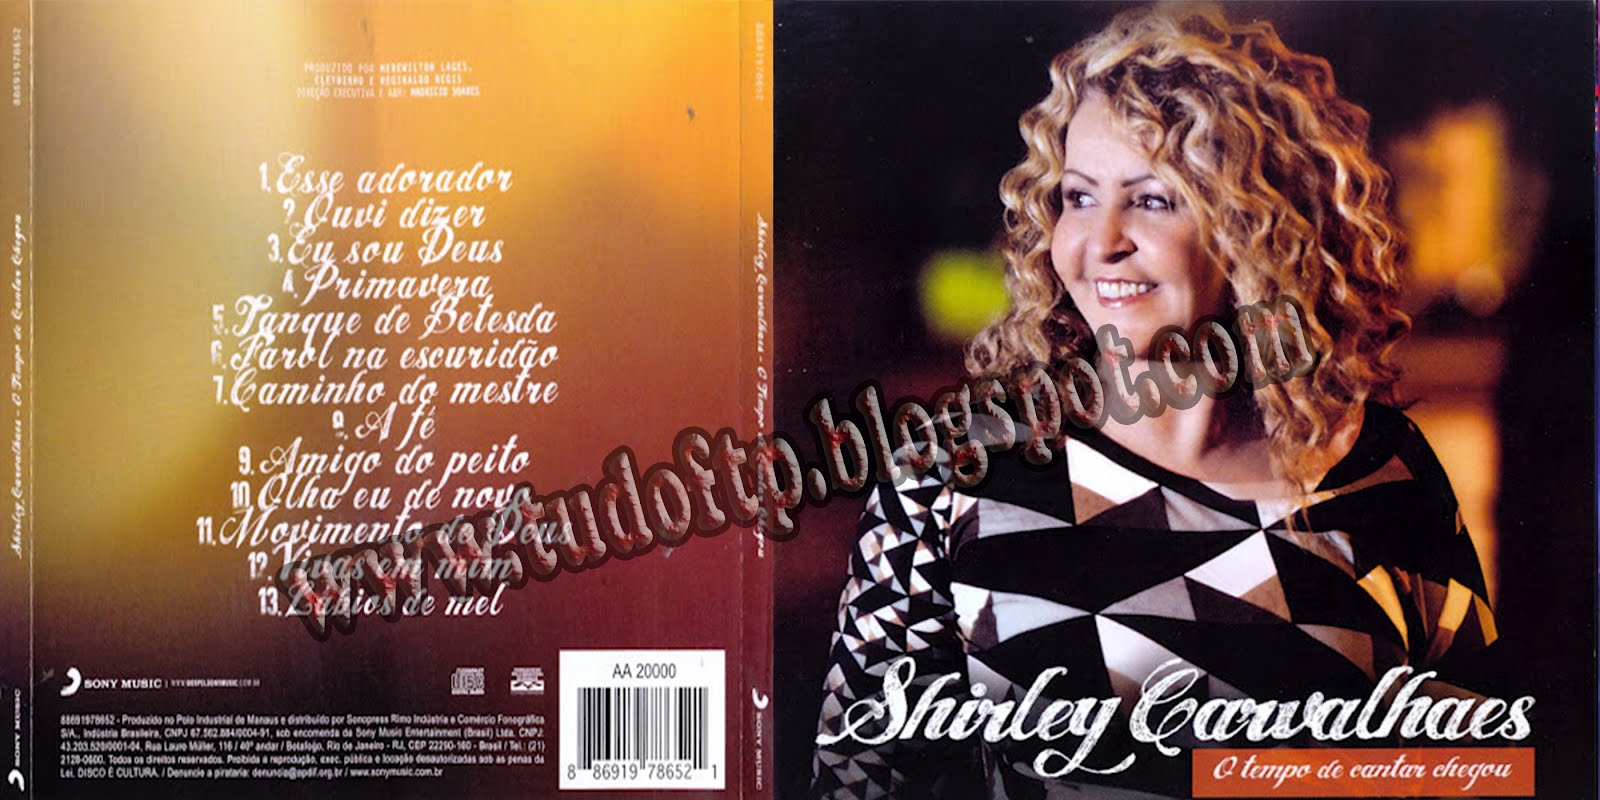 Shirley Carvalhaes CD- O Tempo de Cantar Chegou